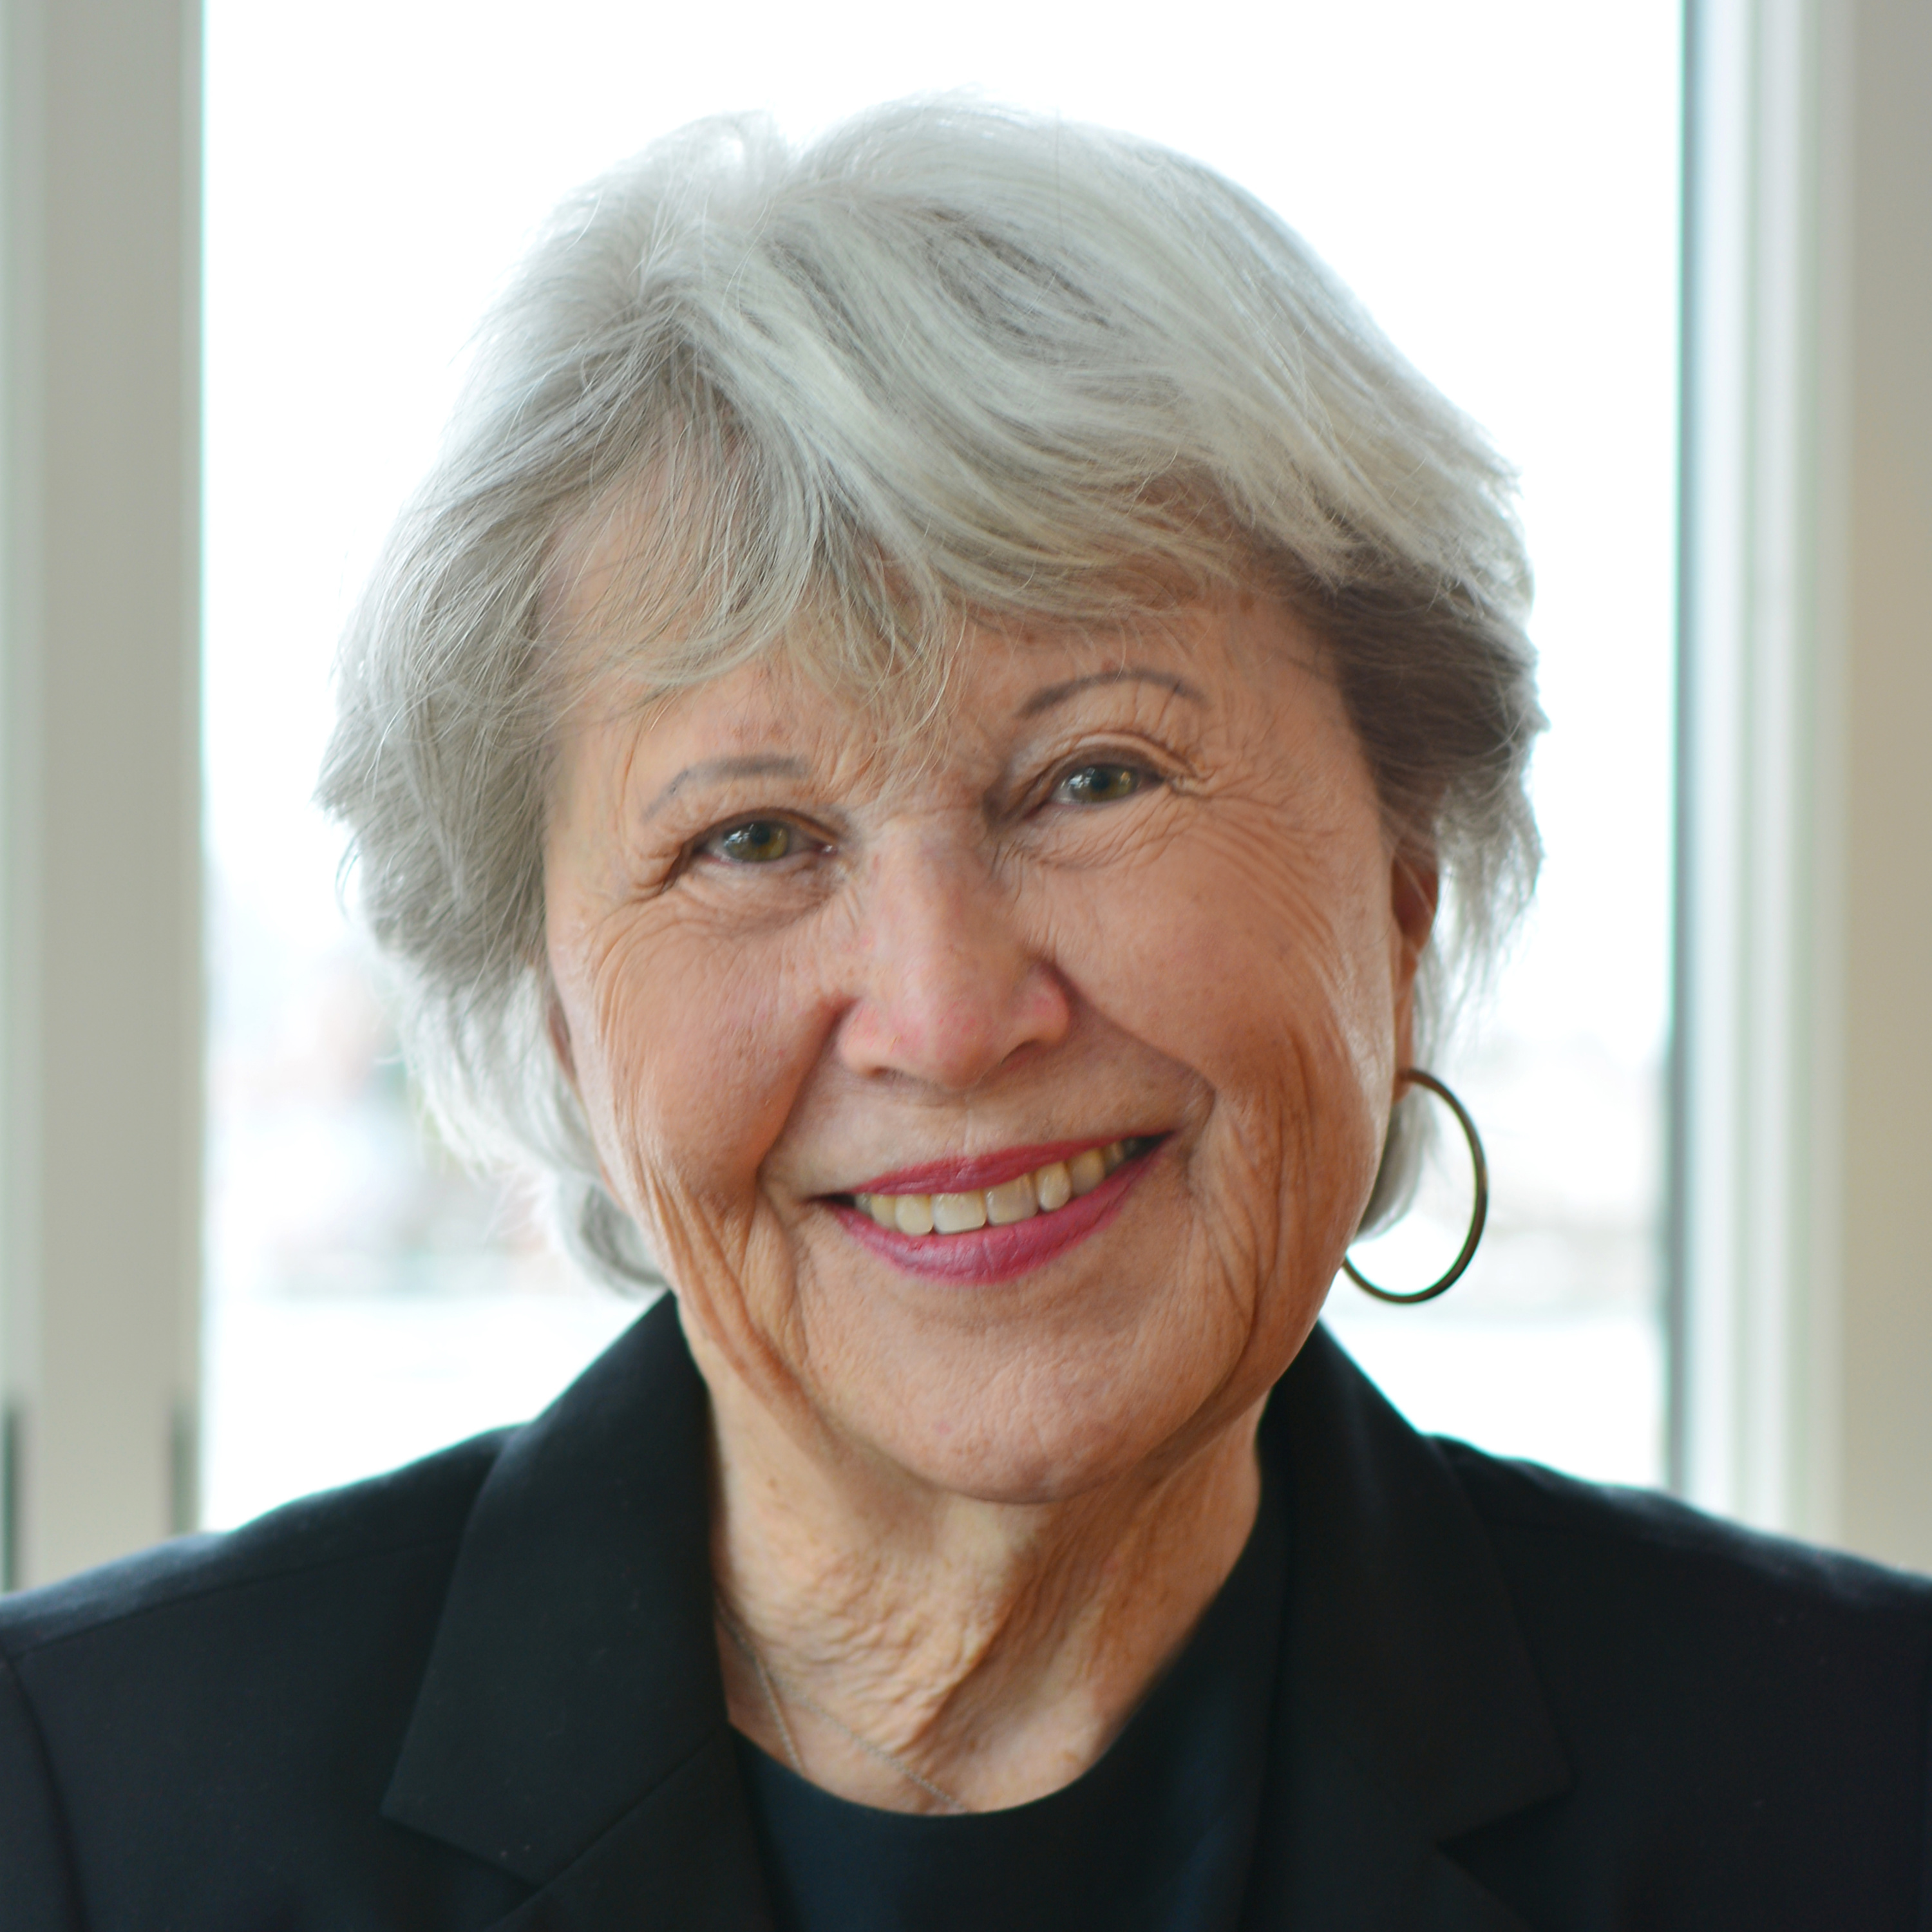 Judge Carolyn Miller Parr (Author of Love's Way)